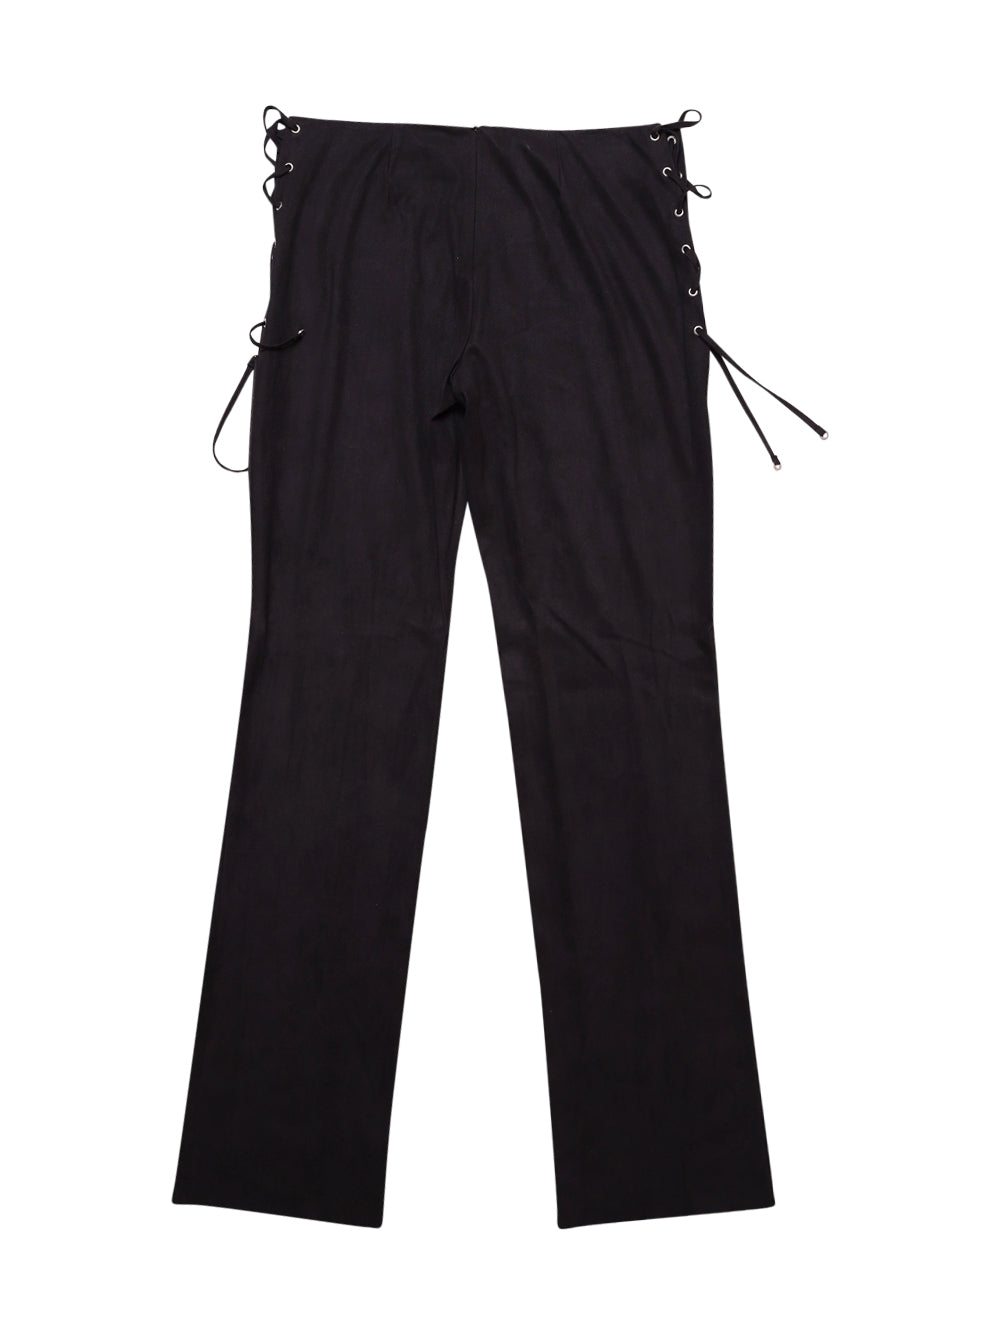 Back photo of Preloved Paola Frani Black Woman's trousers - size 12/L